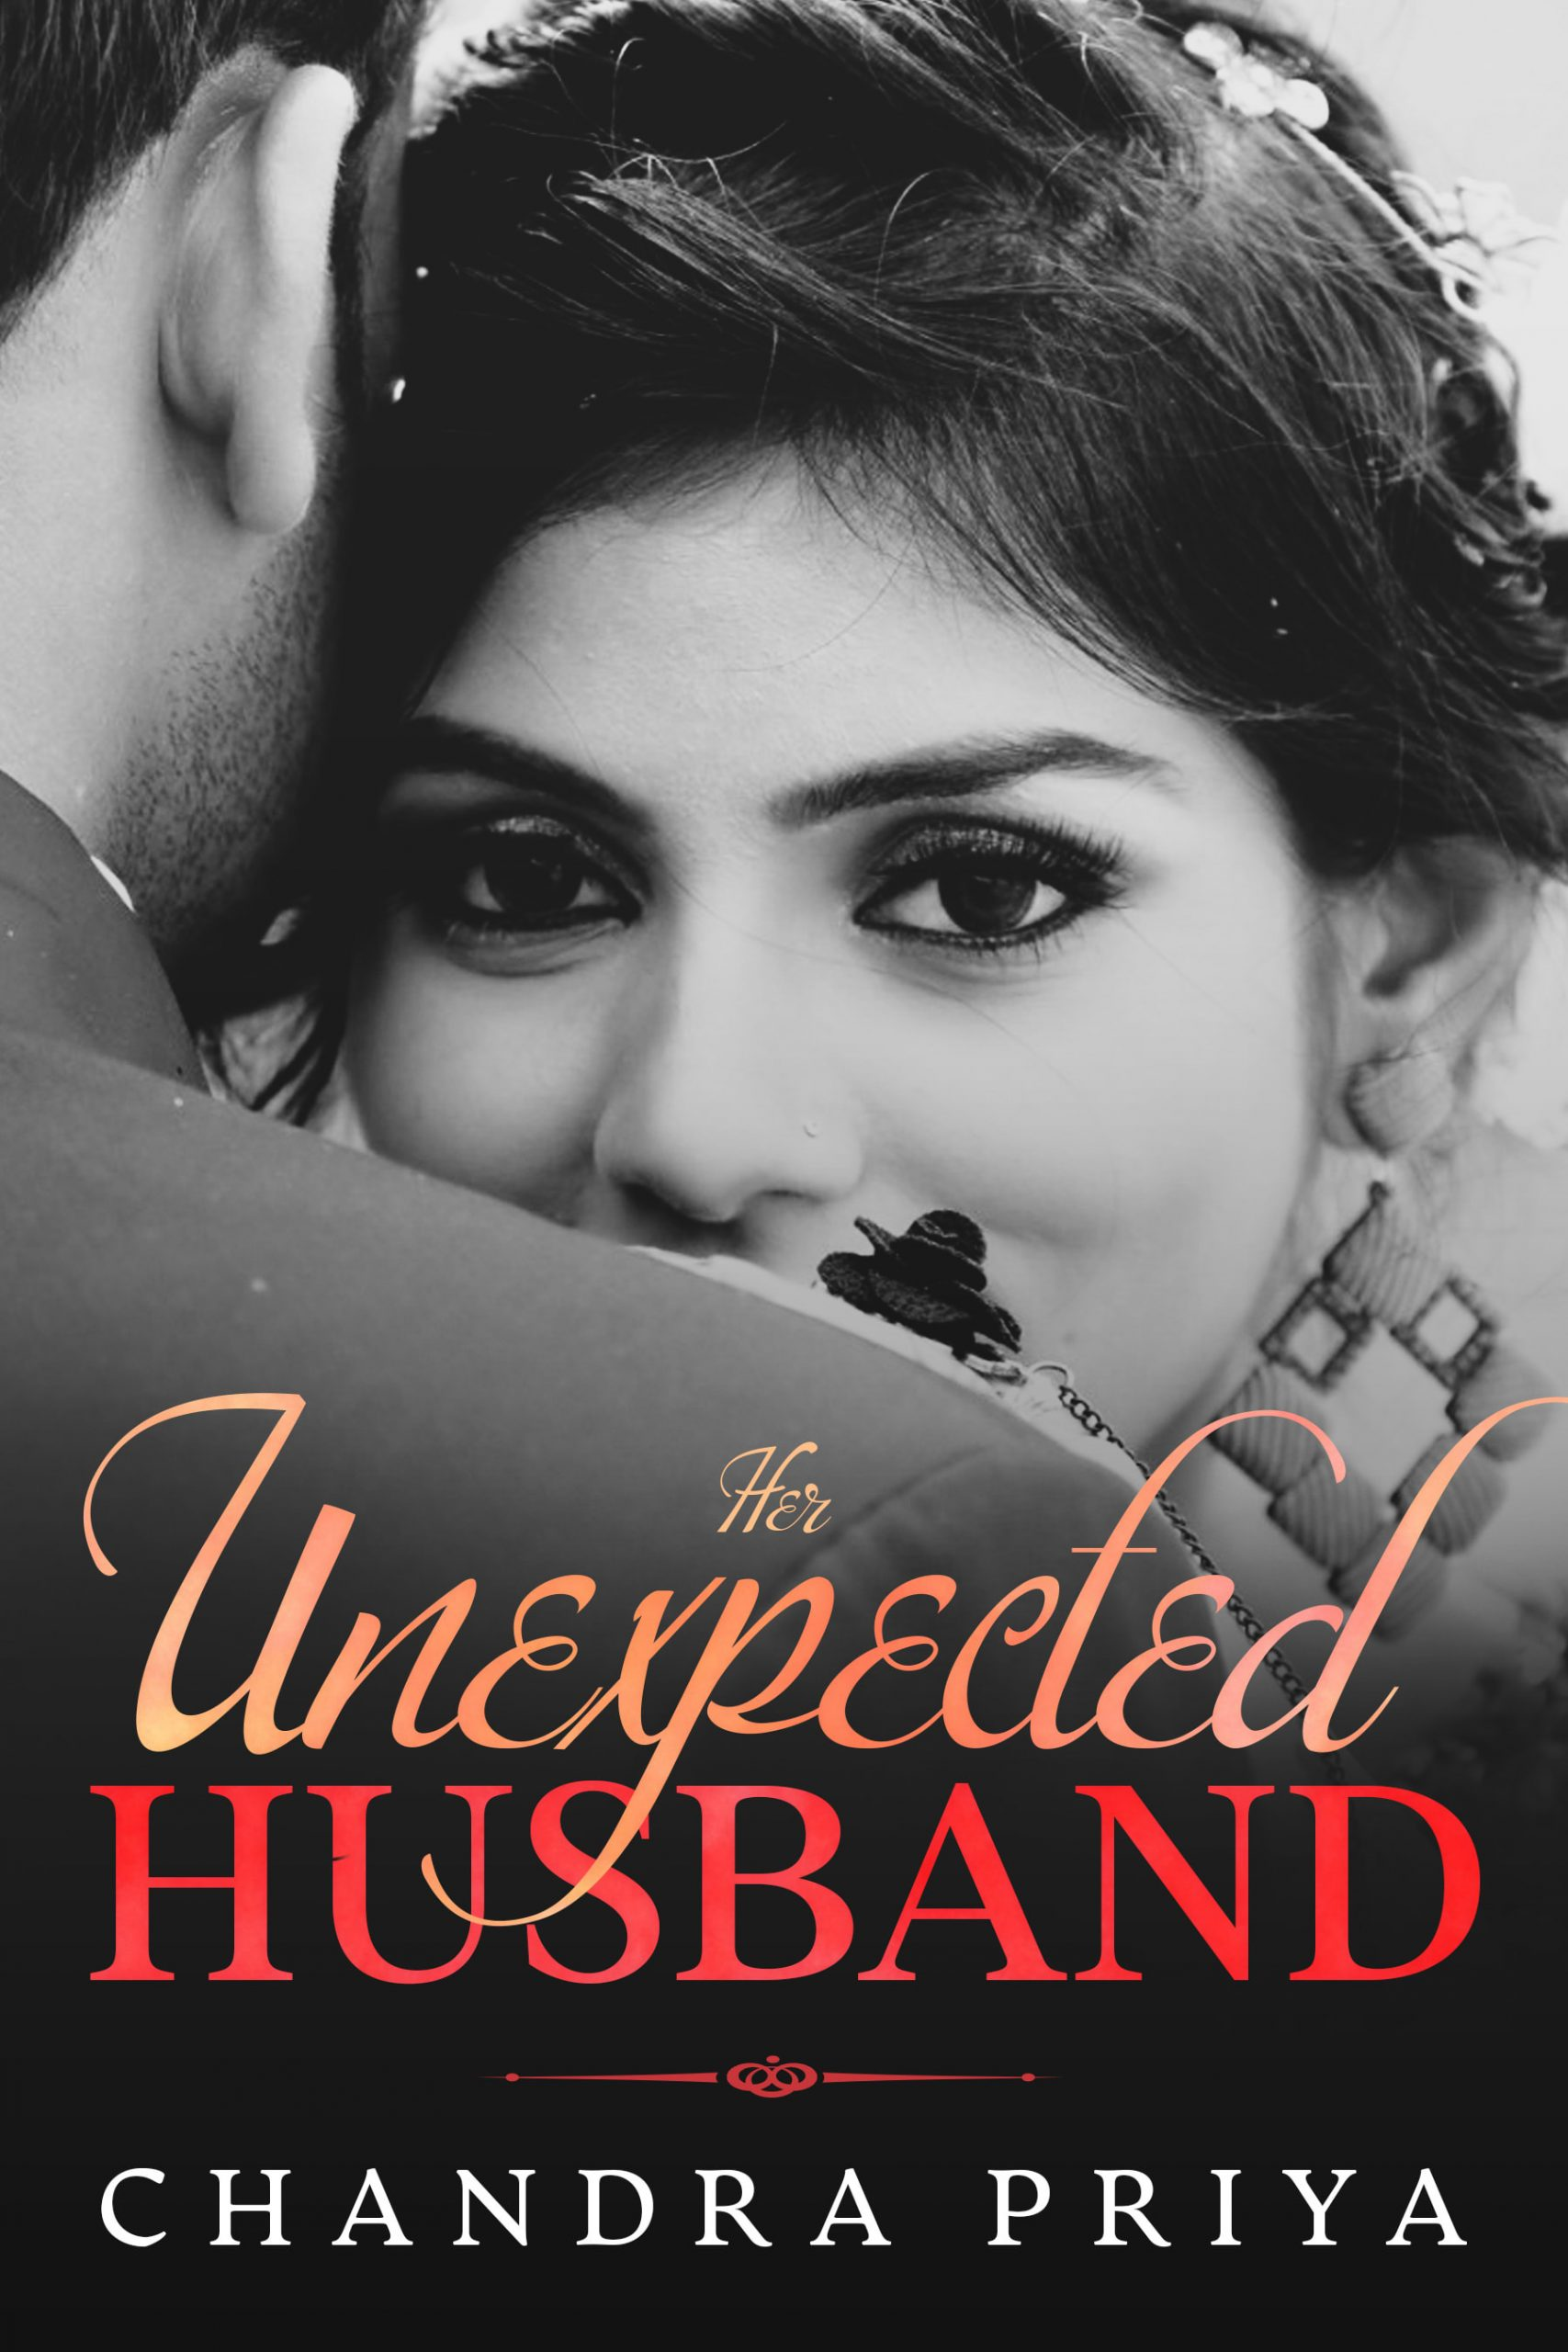 Her Unexpected Husband